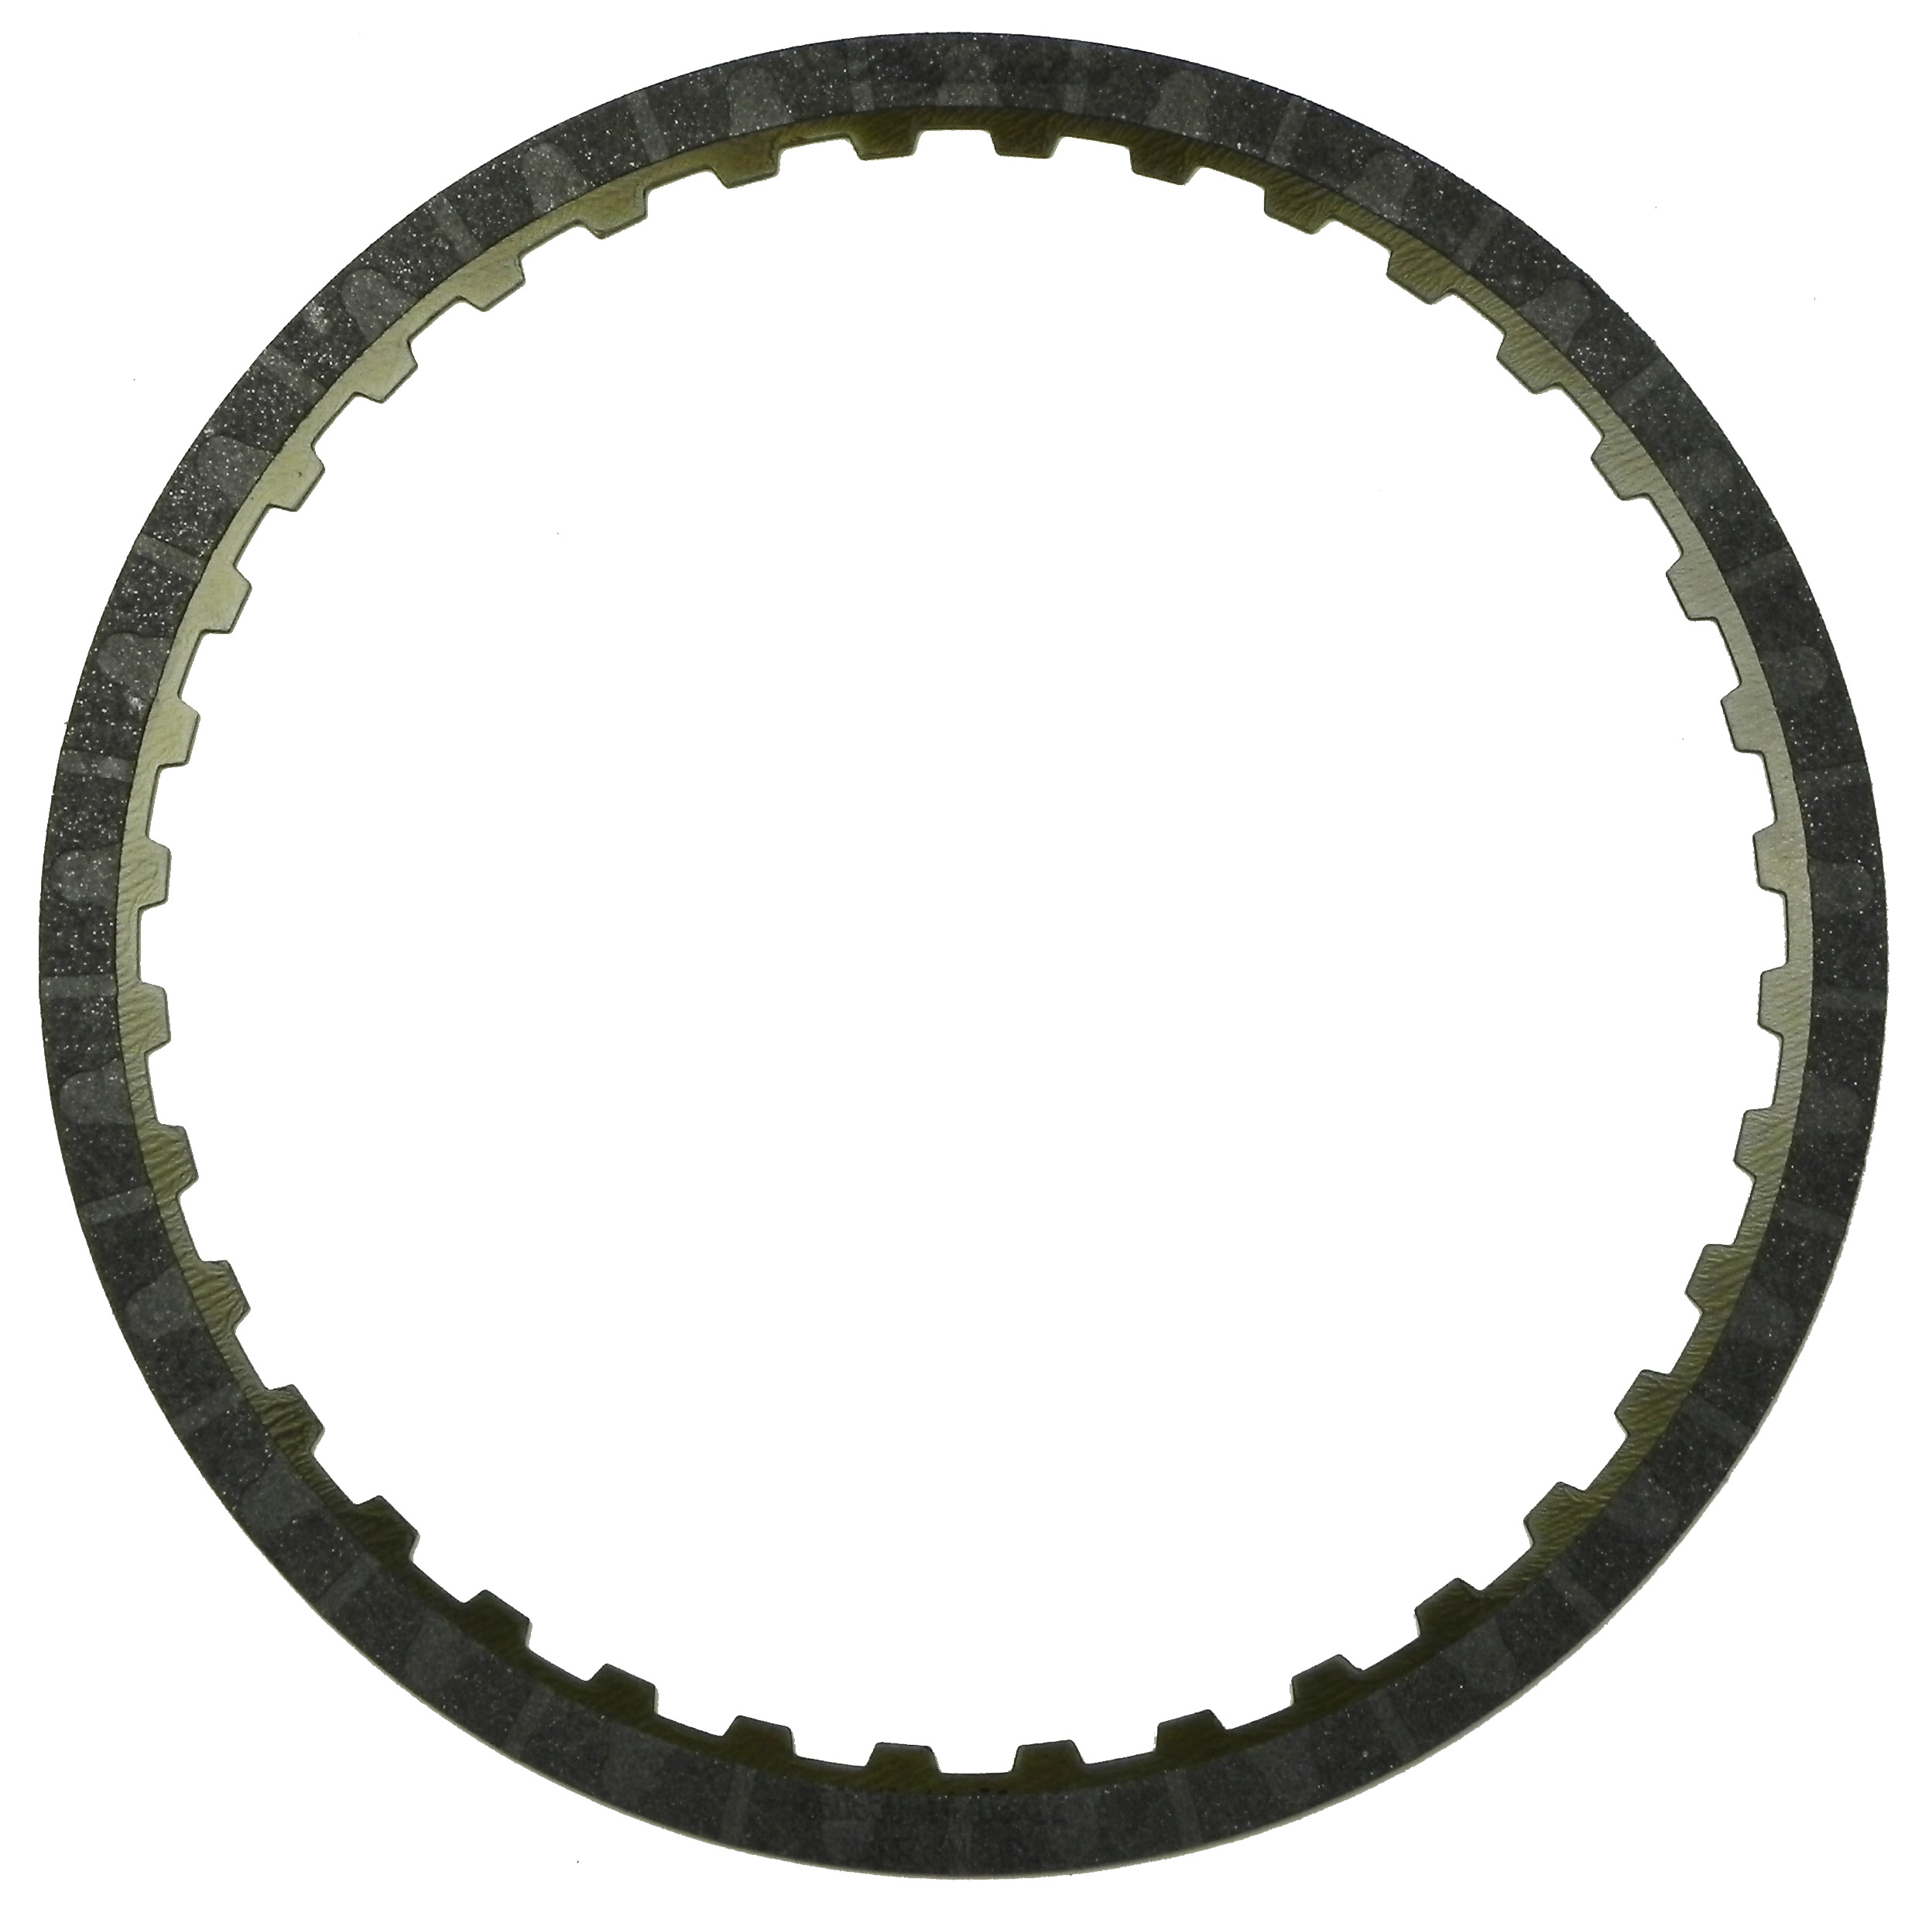 R560650 | 2009-ON Friction Clutch Plate High Energy Low, Reverse Brake High Energy